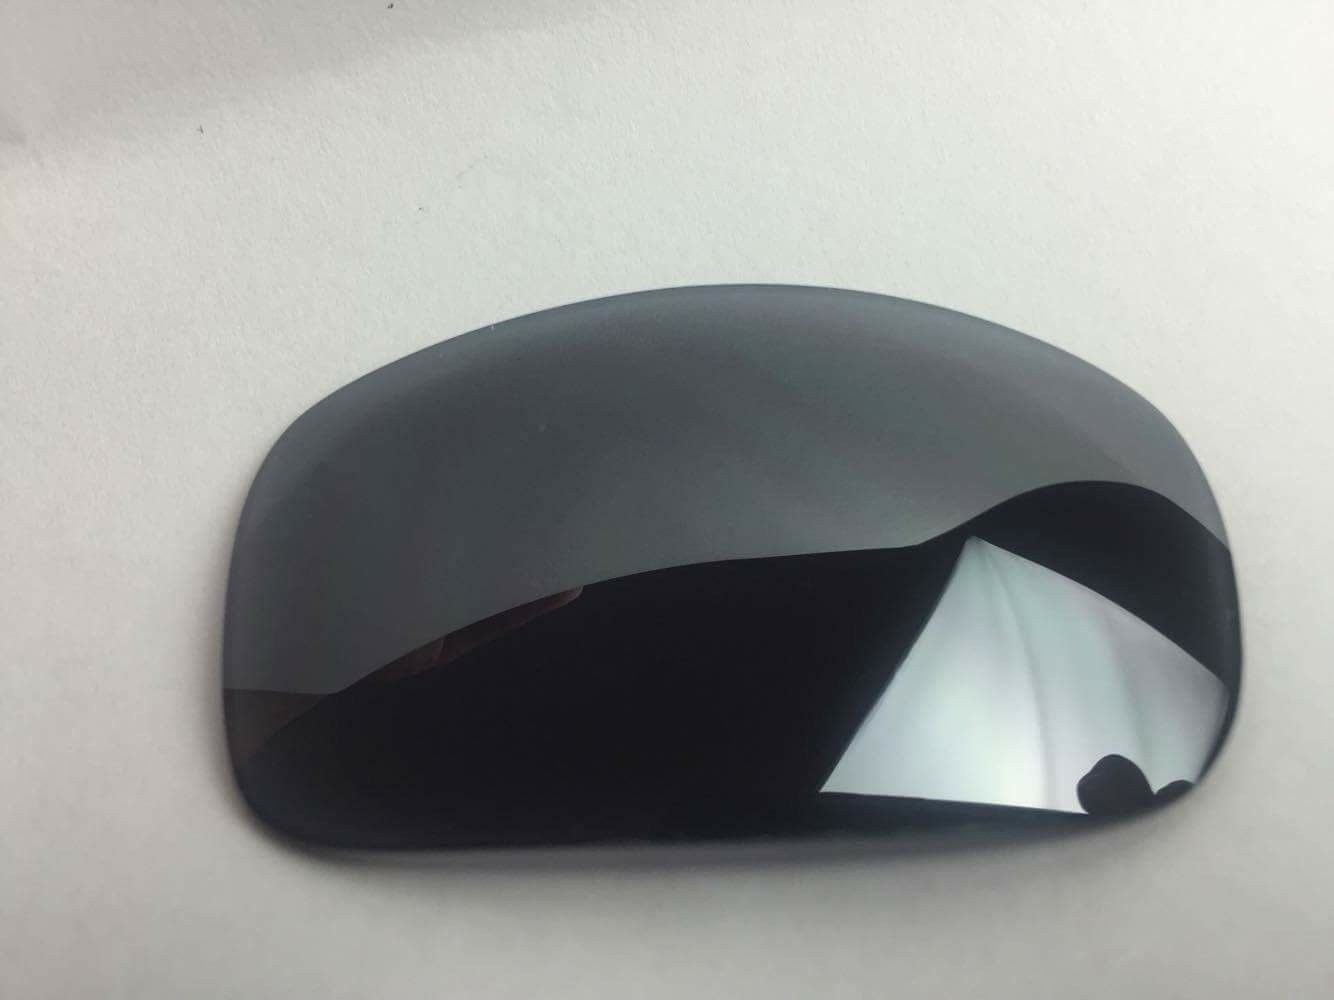 1 set still available of OEM Xsquared Ducati black iridium lenses - image.jpeg